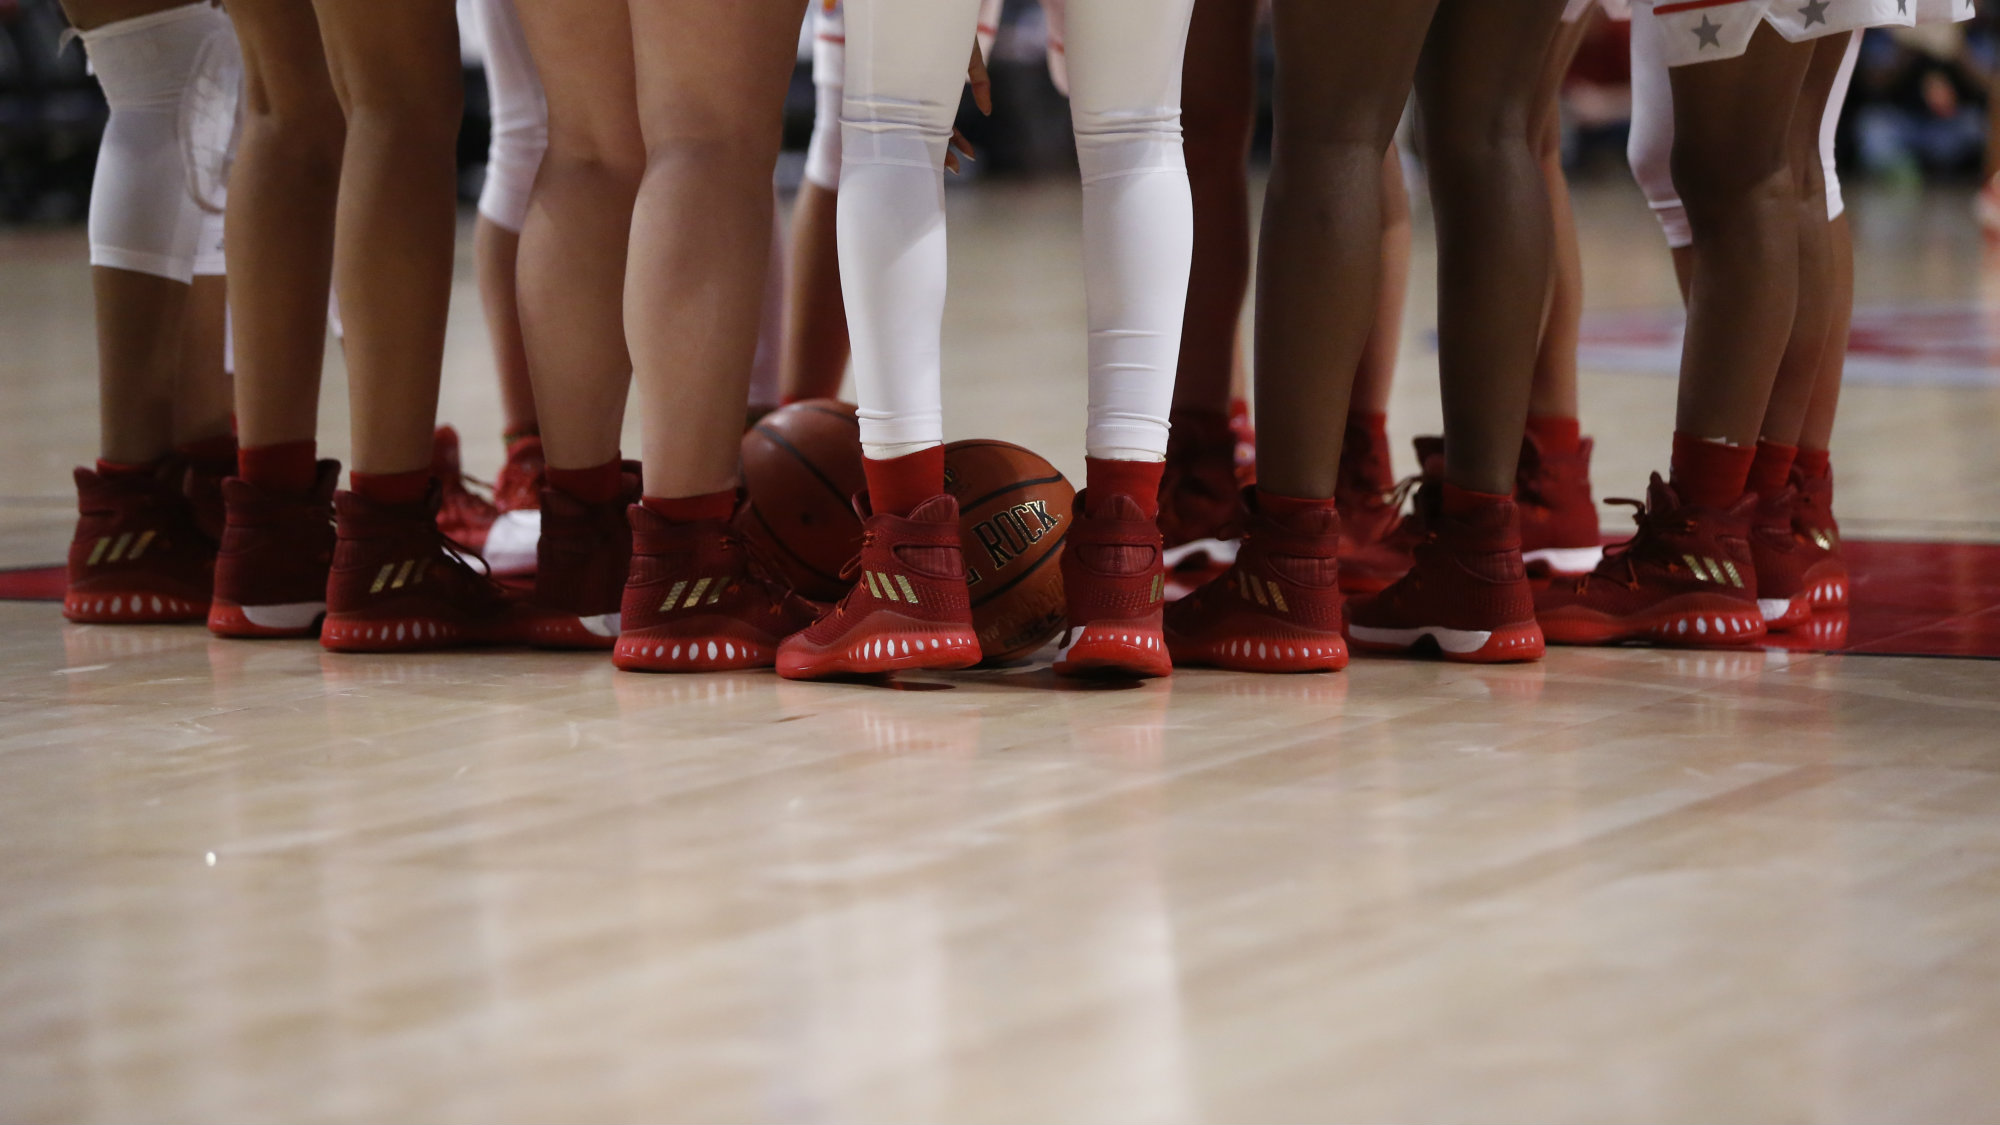 The girls Big West's basketball team huddle before their game against the Big East's team wearing their Adidas shoes during the first half of the McDonald's All-American girls basketball game Wednesday, March 29, 2017, in Chicago.